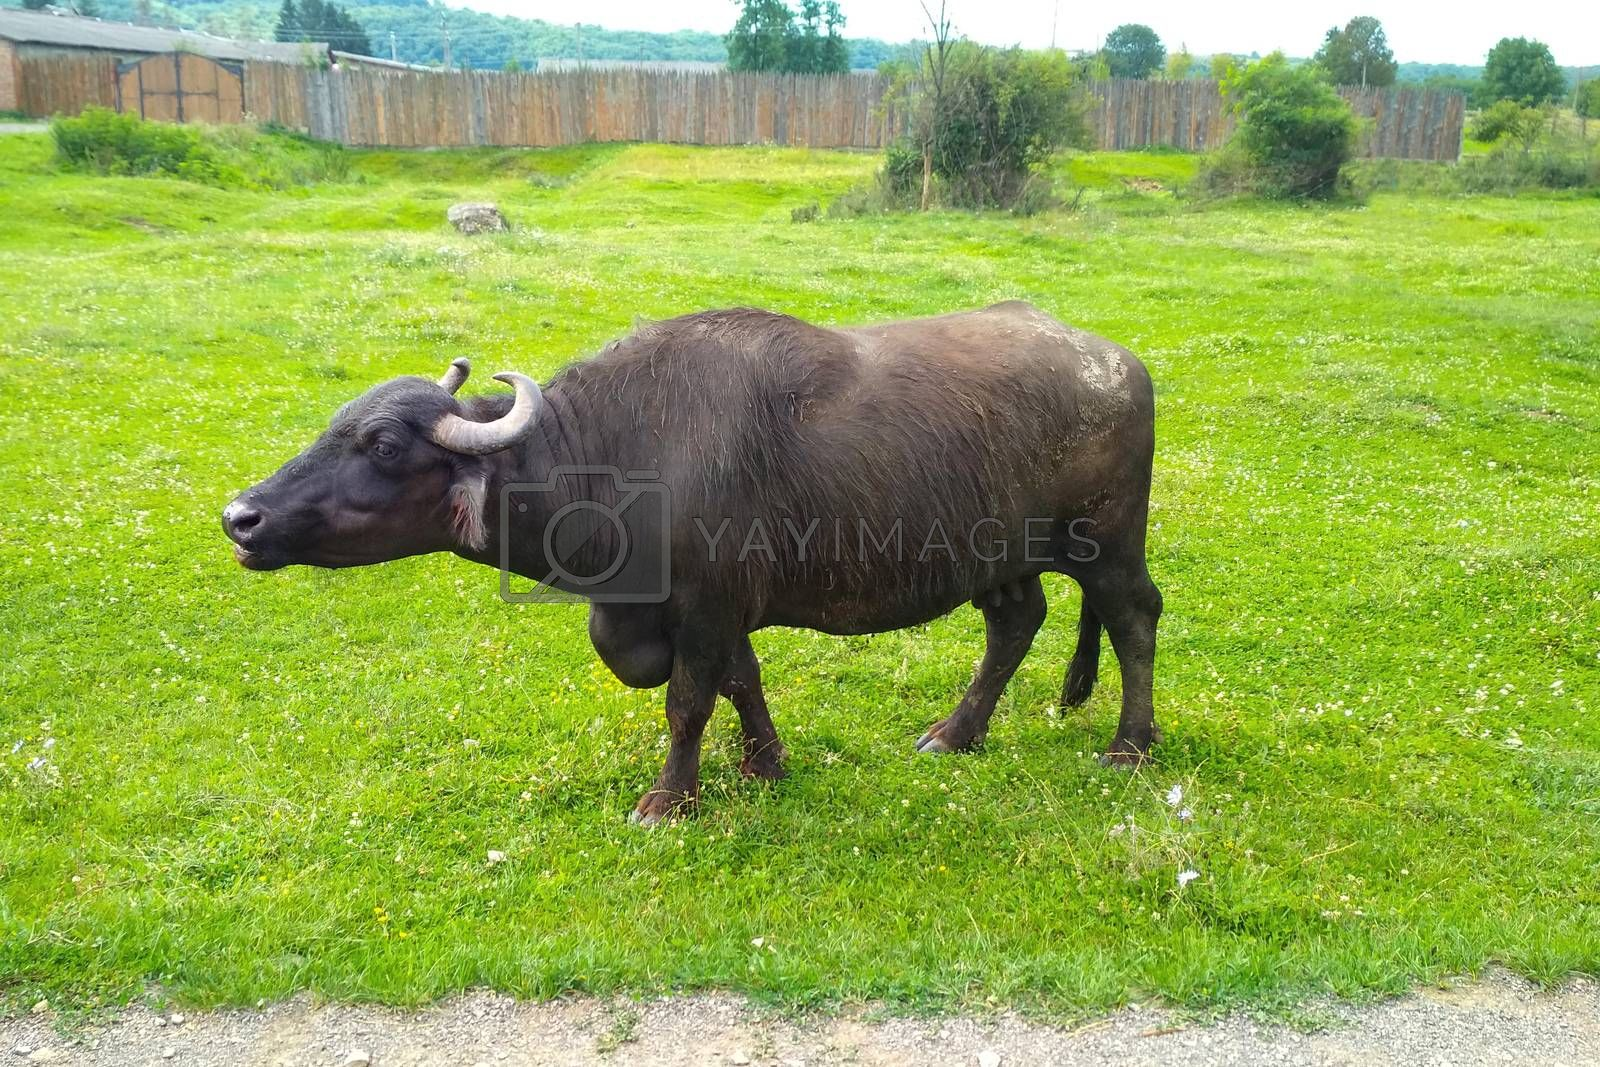 European black buffalo moo on farm against background of green grass. Bull grazing at the farm